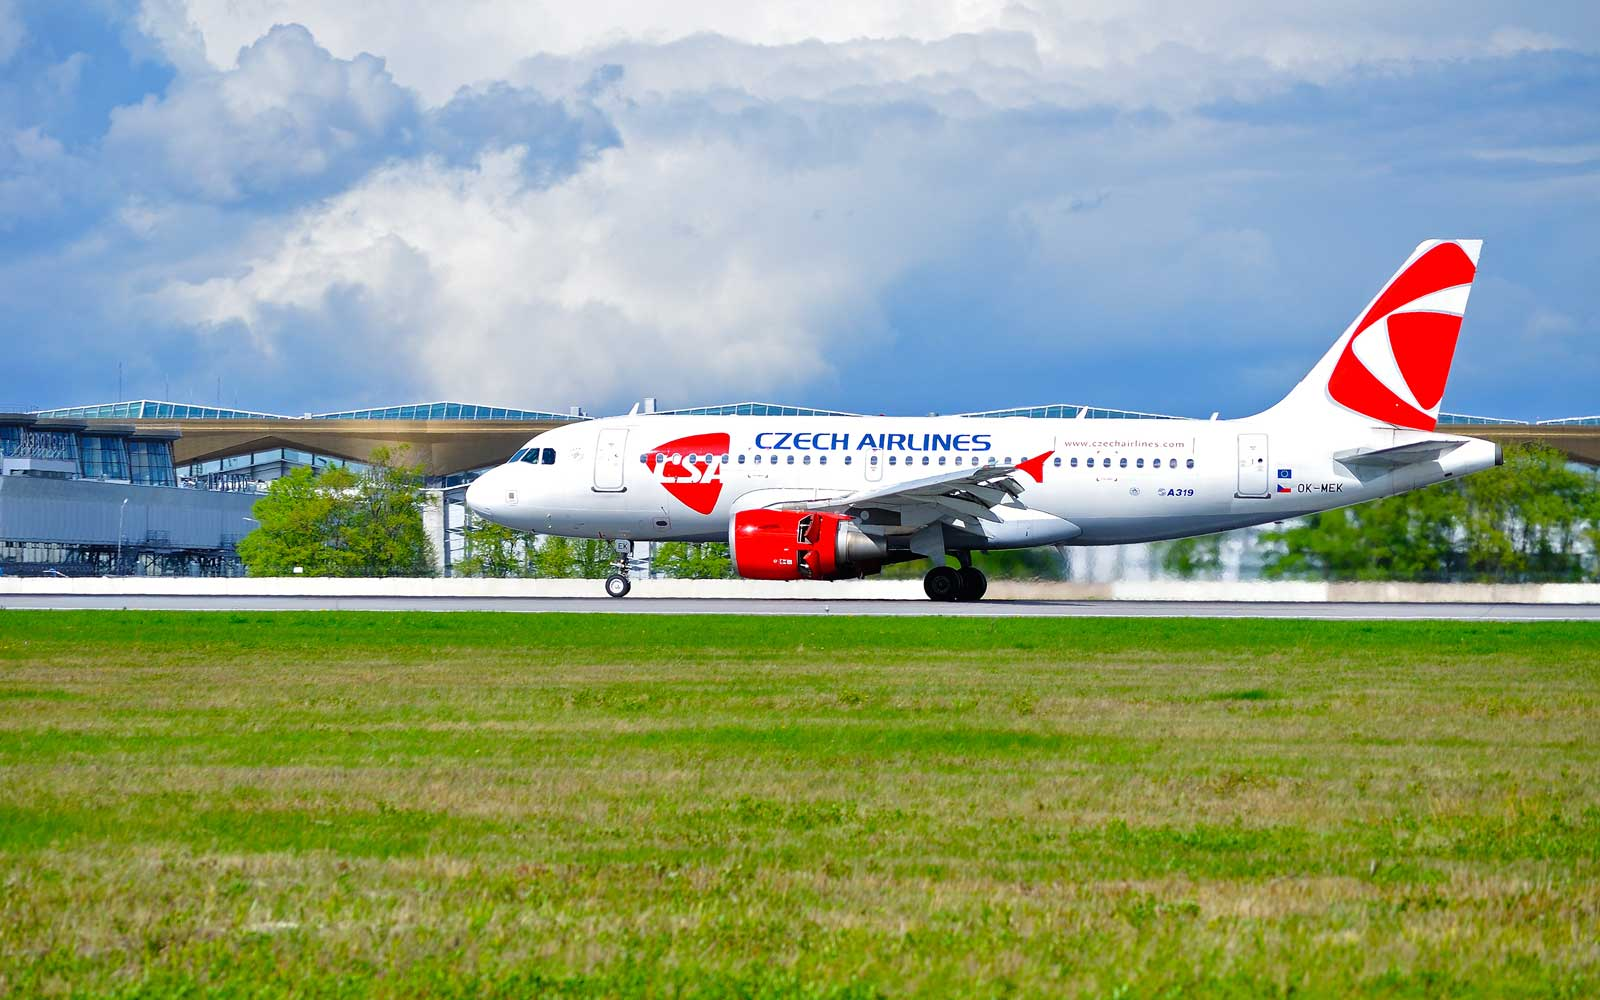 Czech Airlines A319 airplane in Russia